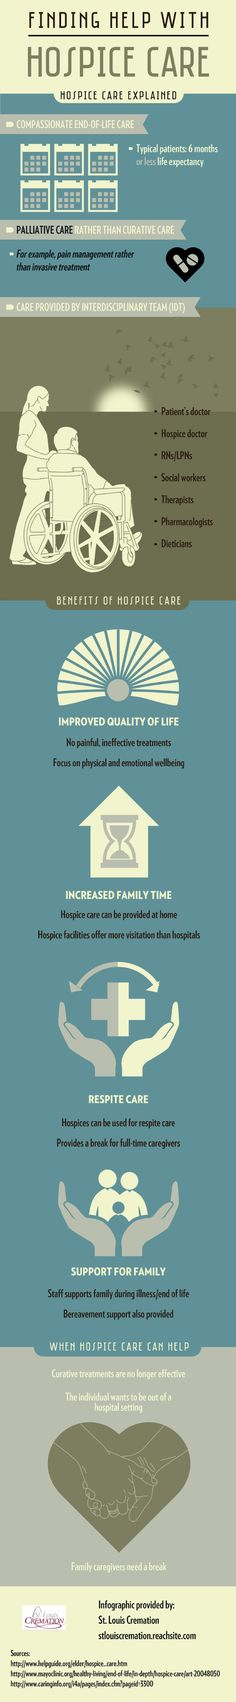 Patients receiving hospice care work with an interdisciplinary team that includes the patient's doctor, the hospice doctor, social workers, therapists, dieticians, and more. View this infographic from a St. Louis cremation service for more hospice facts.